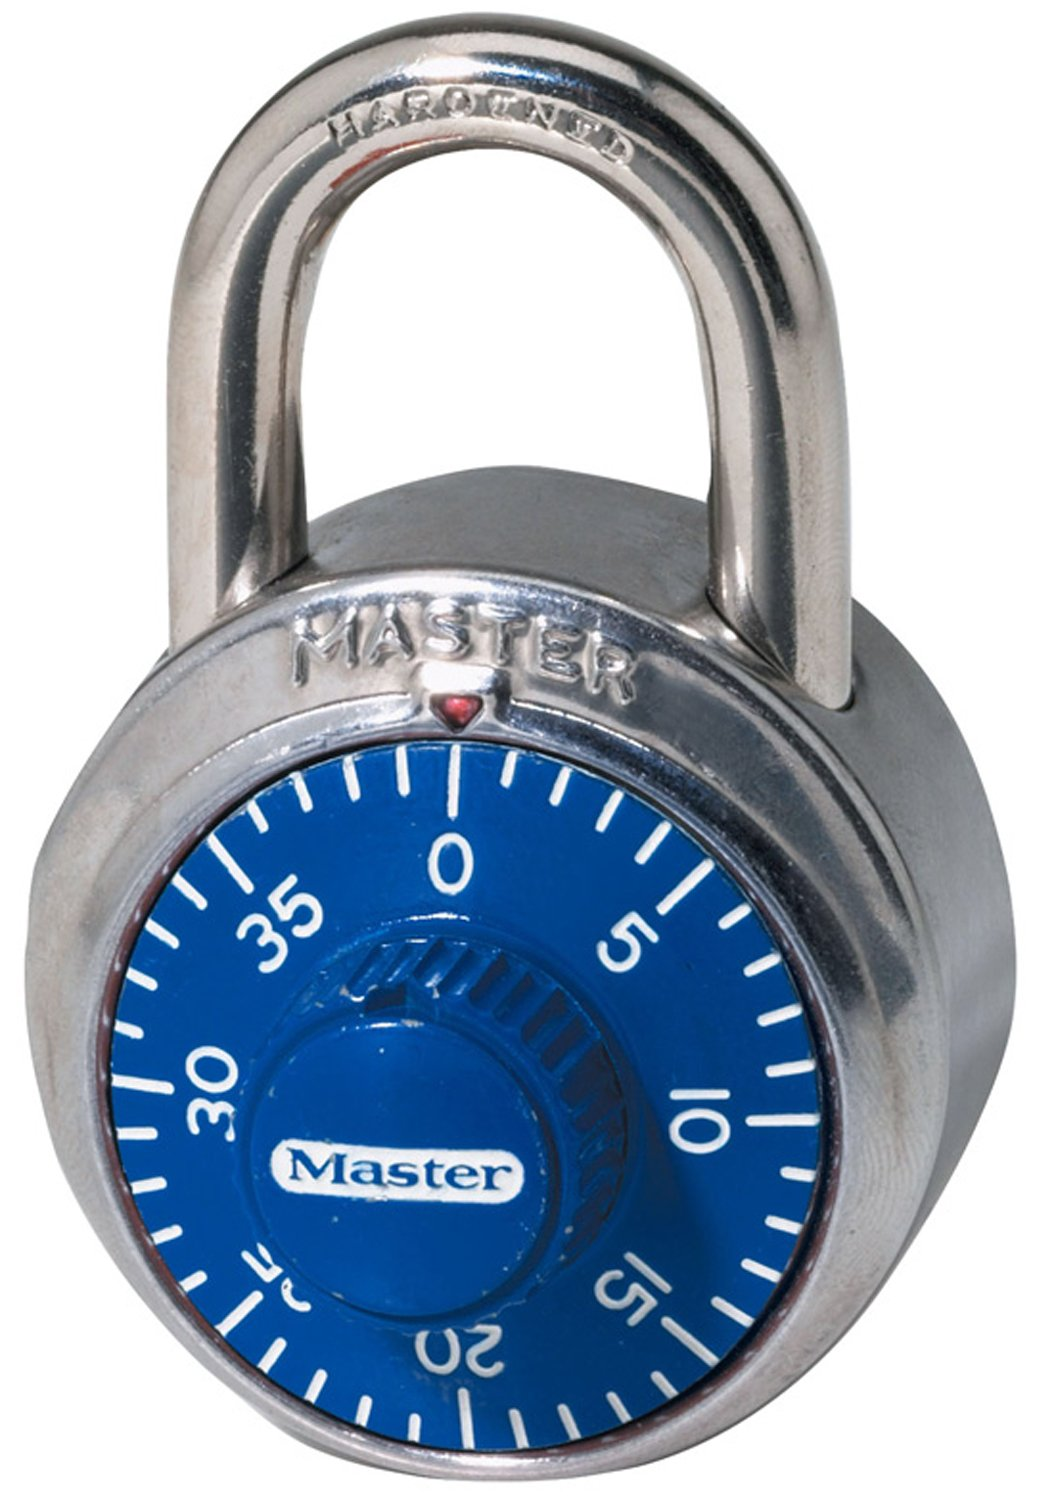 Master Lock 1506D 1-7/8in Combination Lock; Blue Dial Padlock